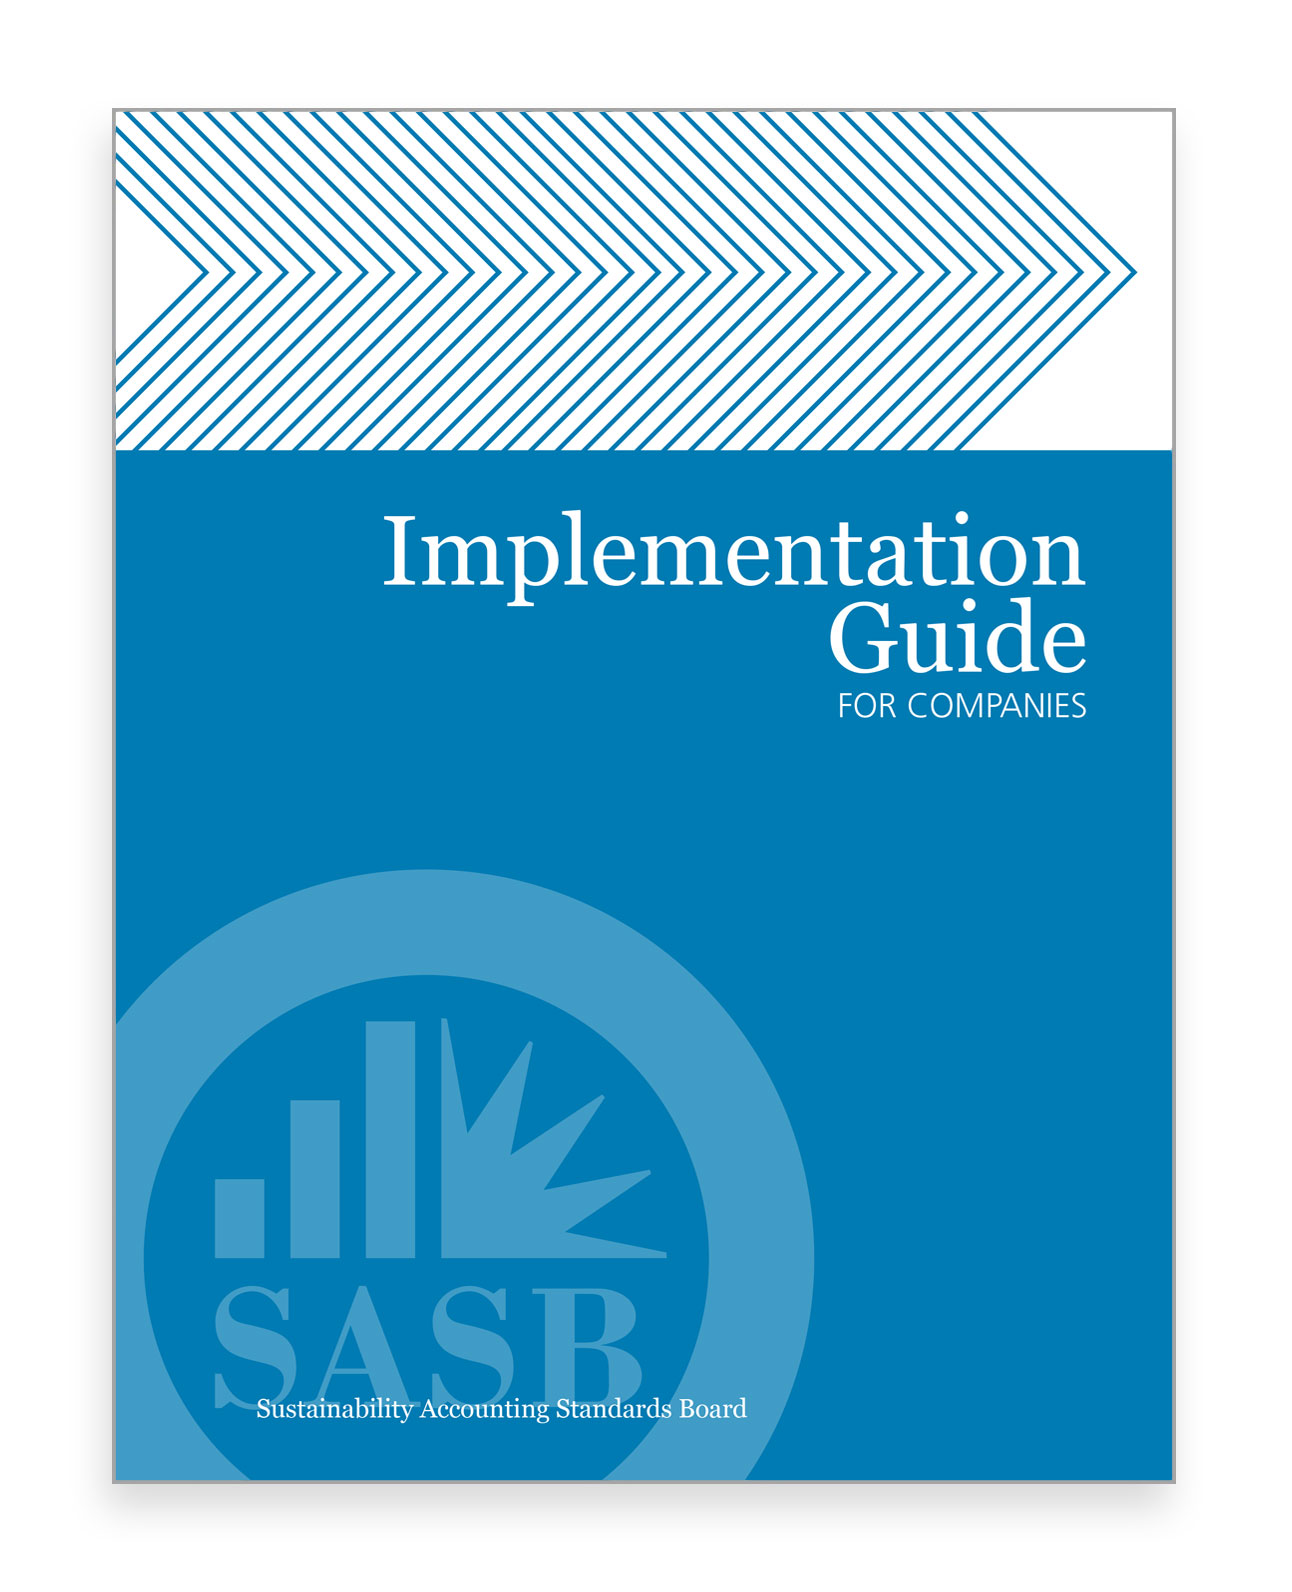 Implementation guide graphic